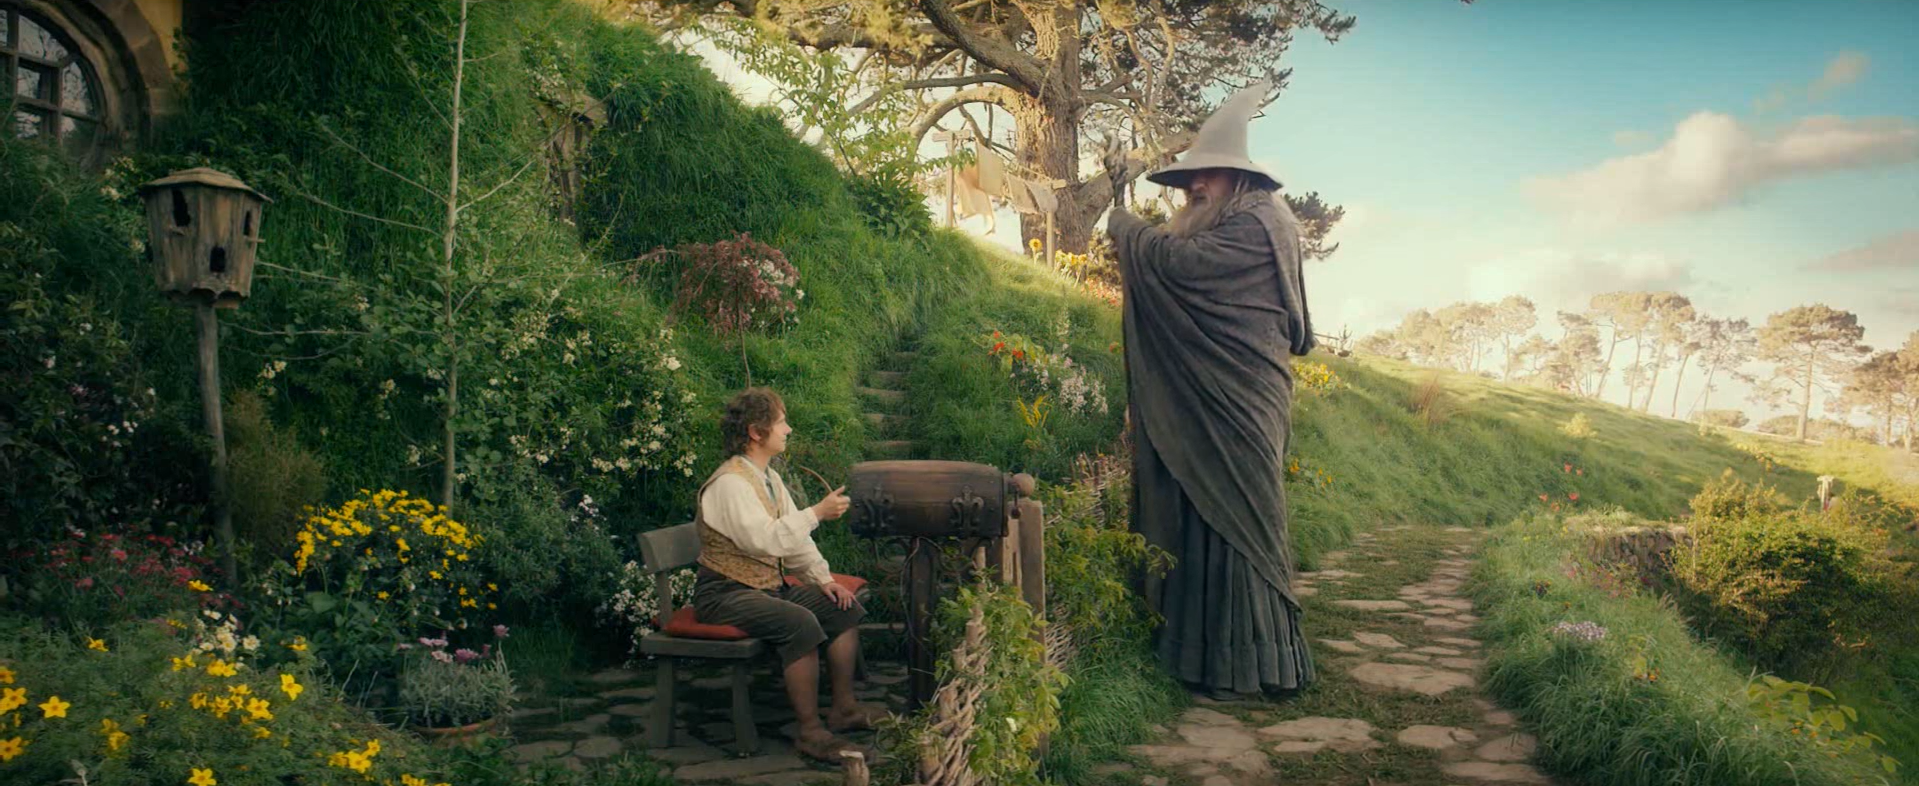 image bilbo meets gandalfpng the one wiki to rule